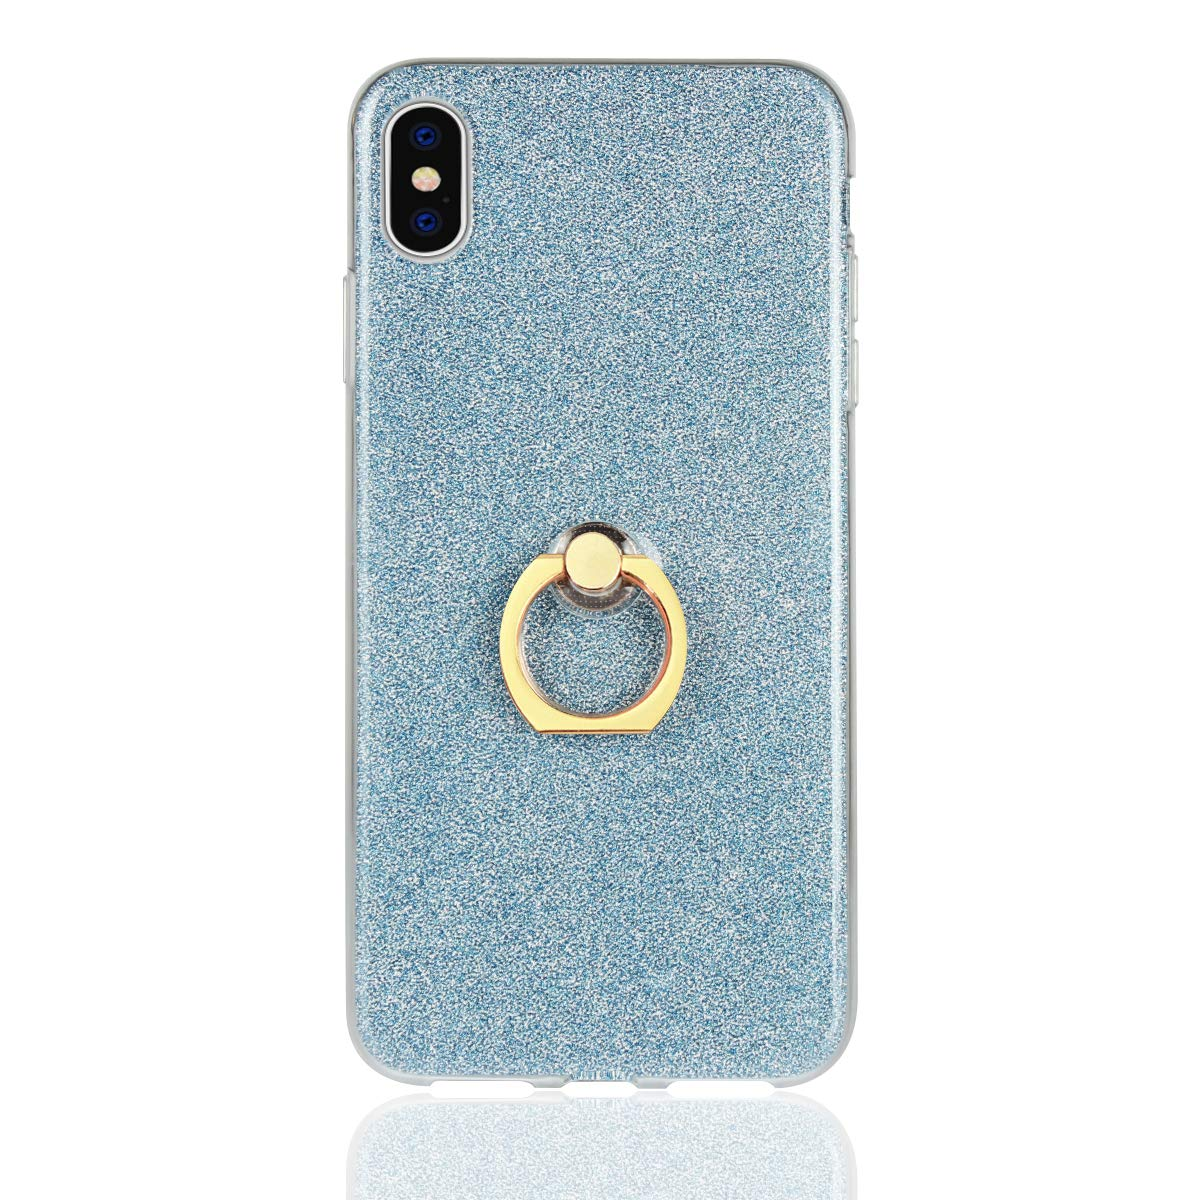 BtDuck iPhone XS Max Case Glitter Soft TPU Silicone Case Finger Grip Ring Phone Protector Shiny Bling Case Silver Clear View Crystal Cover Cute Case Gold Holster Skin Slim Fit Phone Protector Case